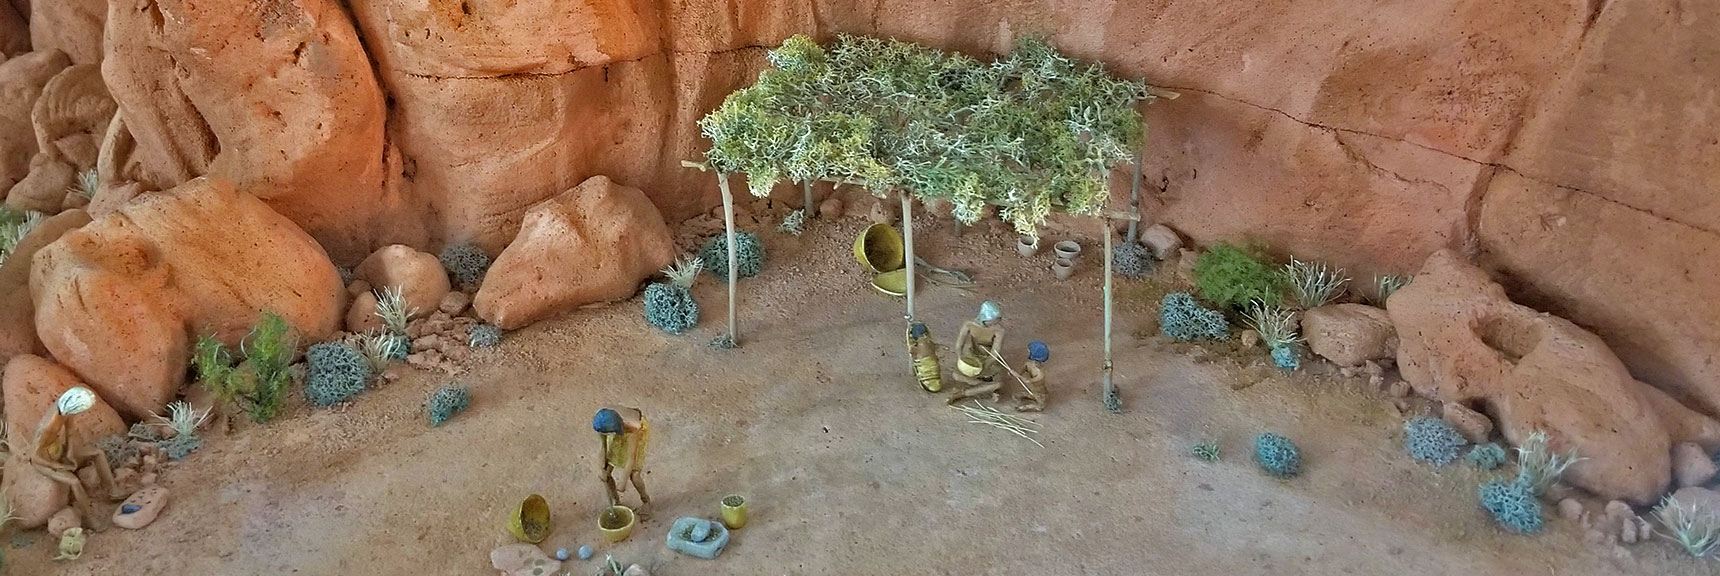 Recreation of Southern Paiute Home in Valley of Fire State Park Visitor Center, Nevada